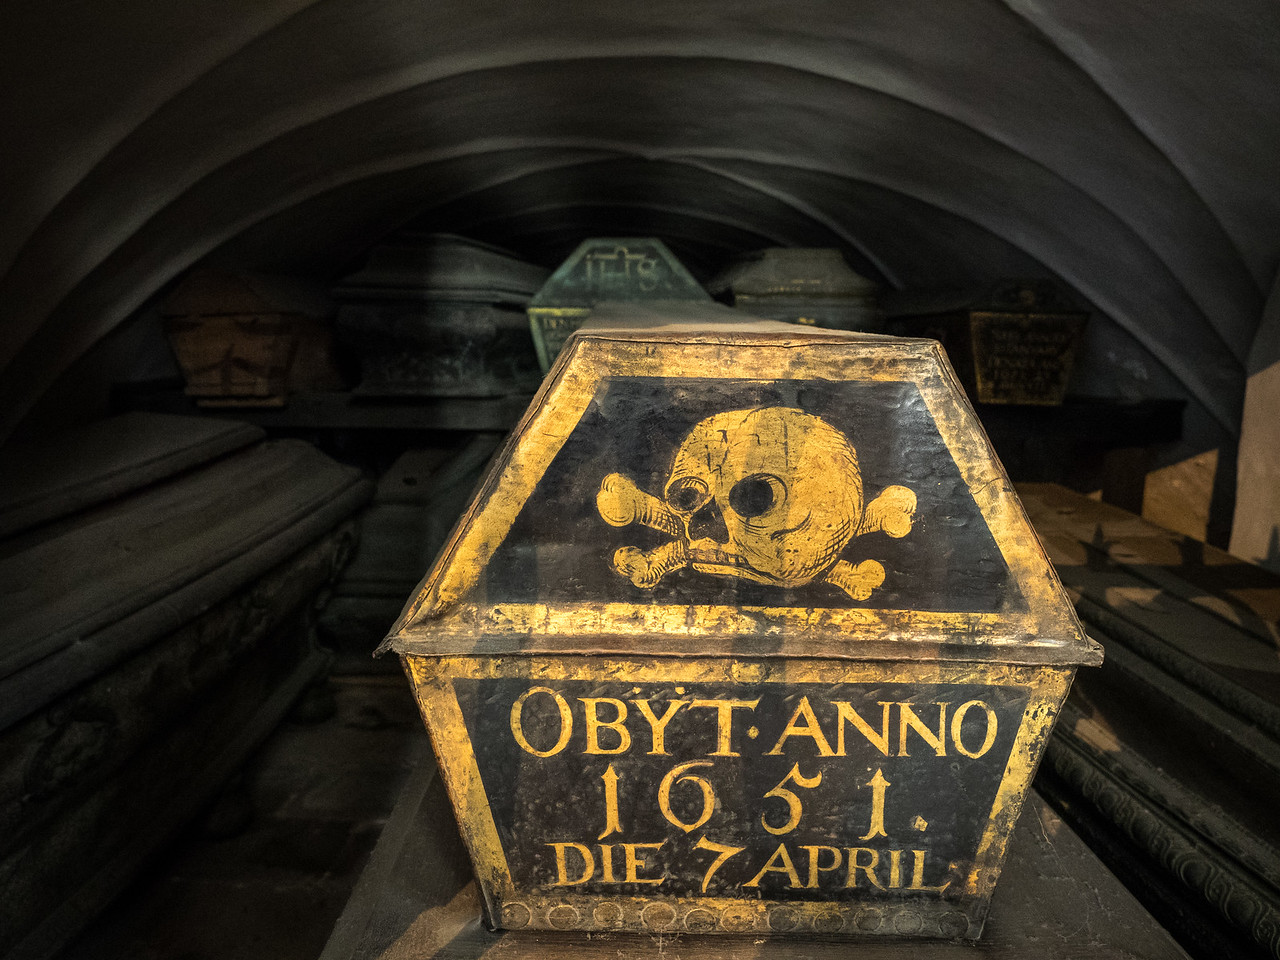 A crypt full of coffins in Riddarholmskyrkan church.